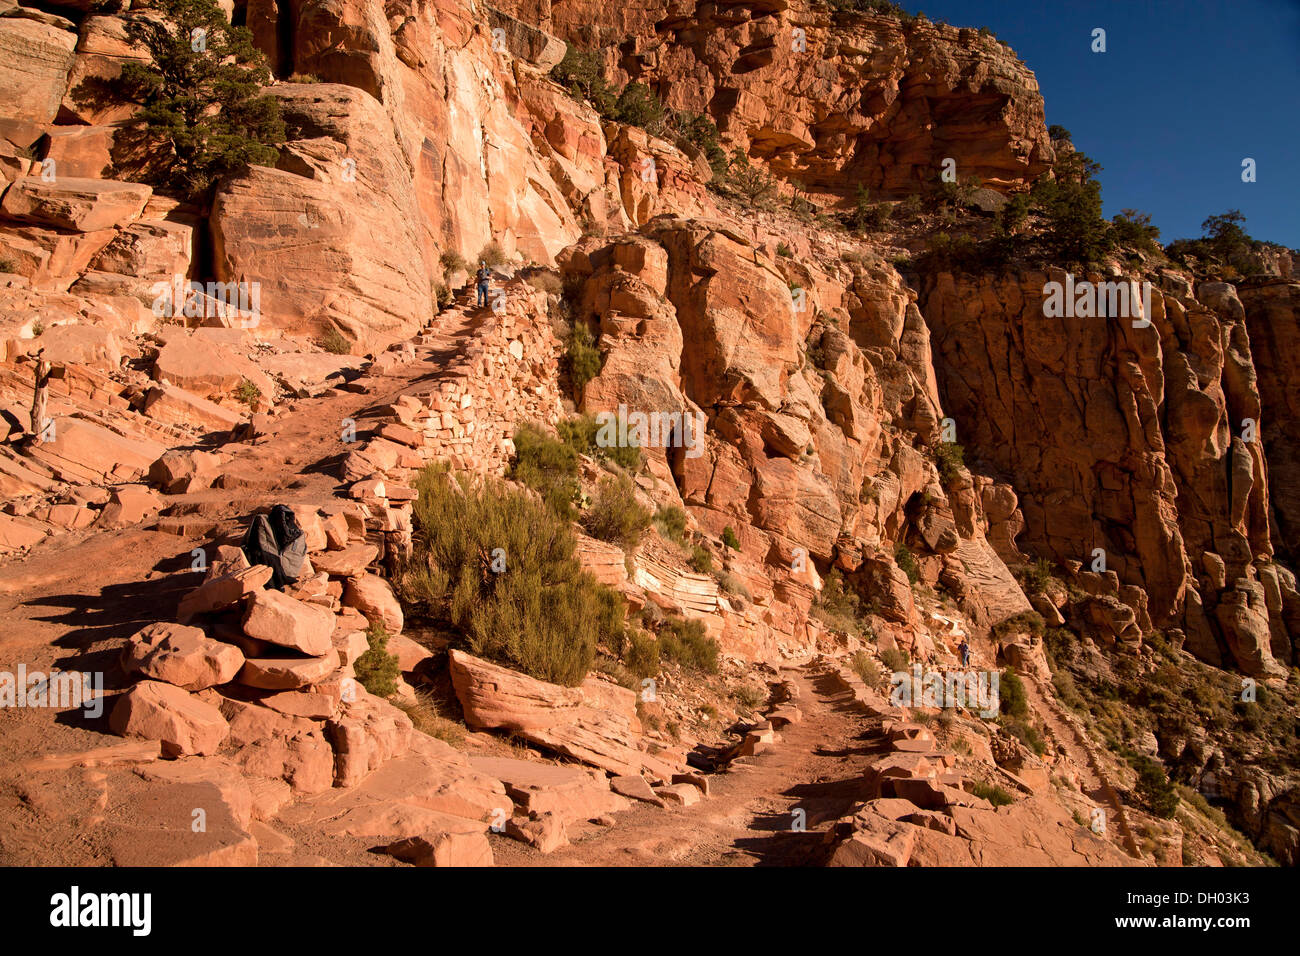 On the South Kaibab trail through Grand Canyon National Park, Grand-Canyon-Nationalpark, Arizona, United States - Stock Image